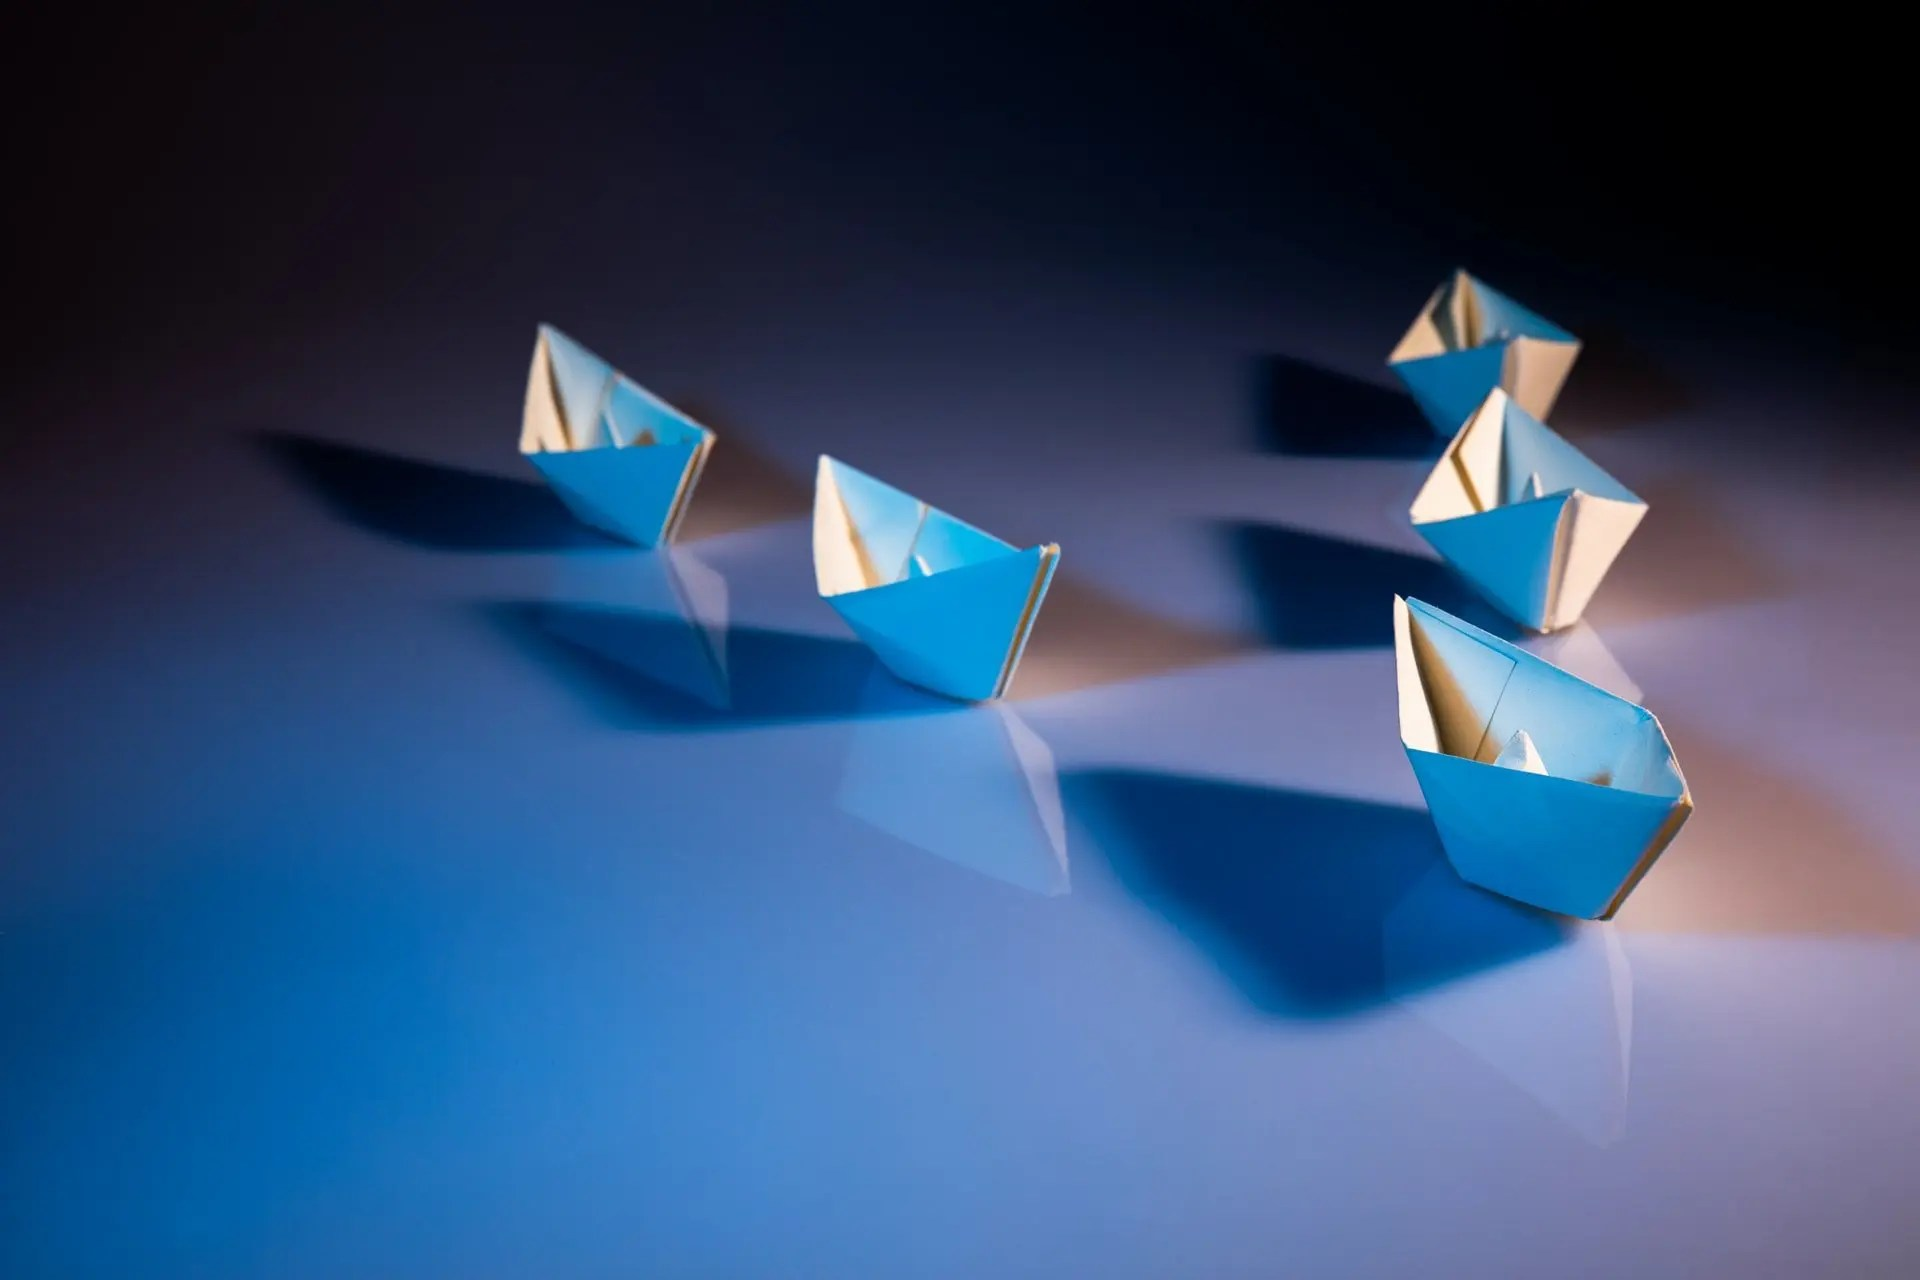 Paper boats lining up behind a leader